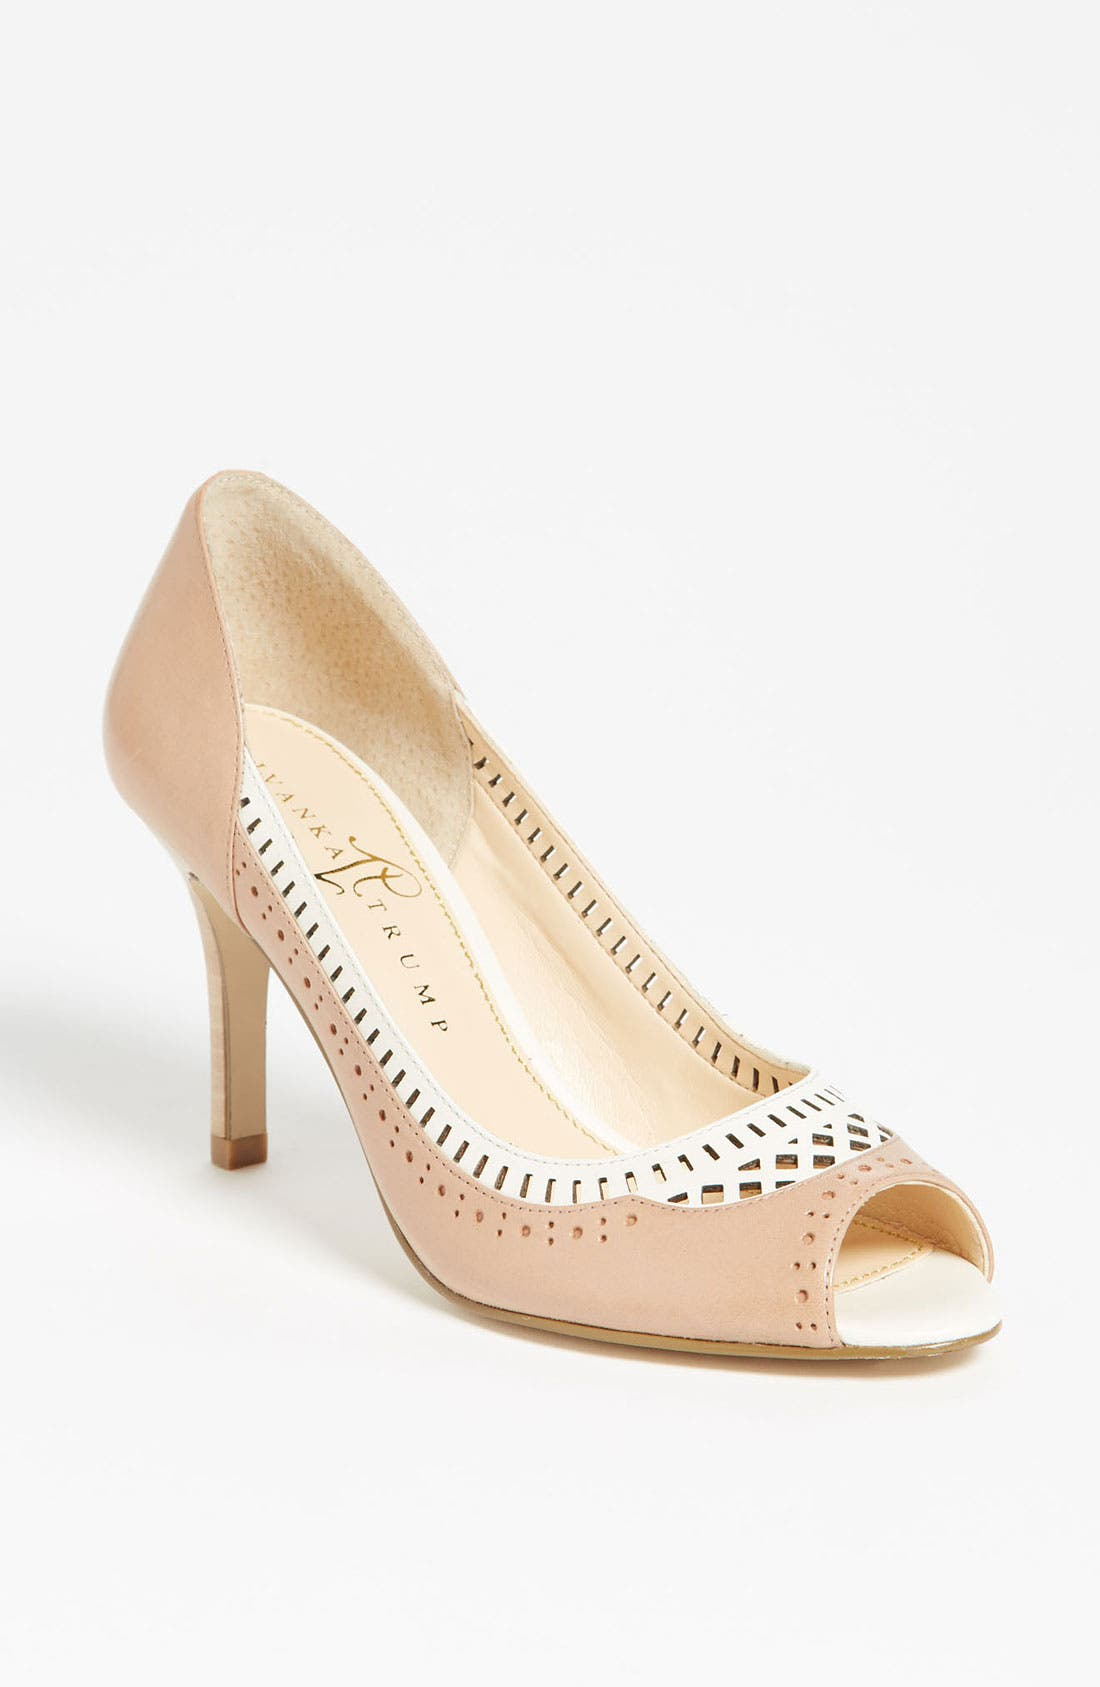 Main Image - IVANKA TRUMP CANDICE PUMP